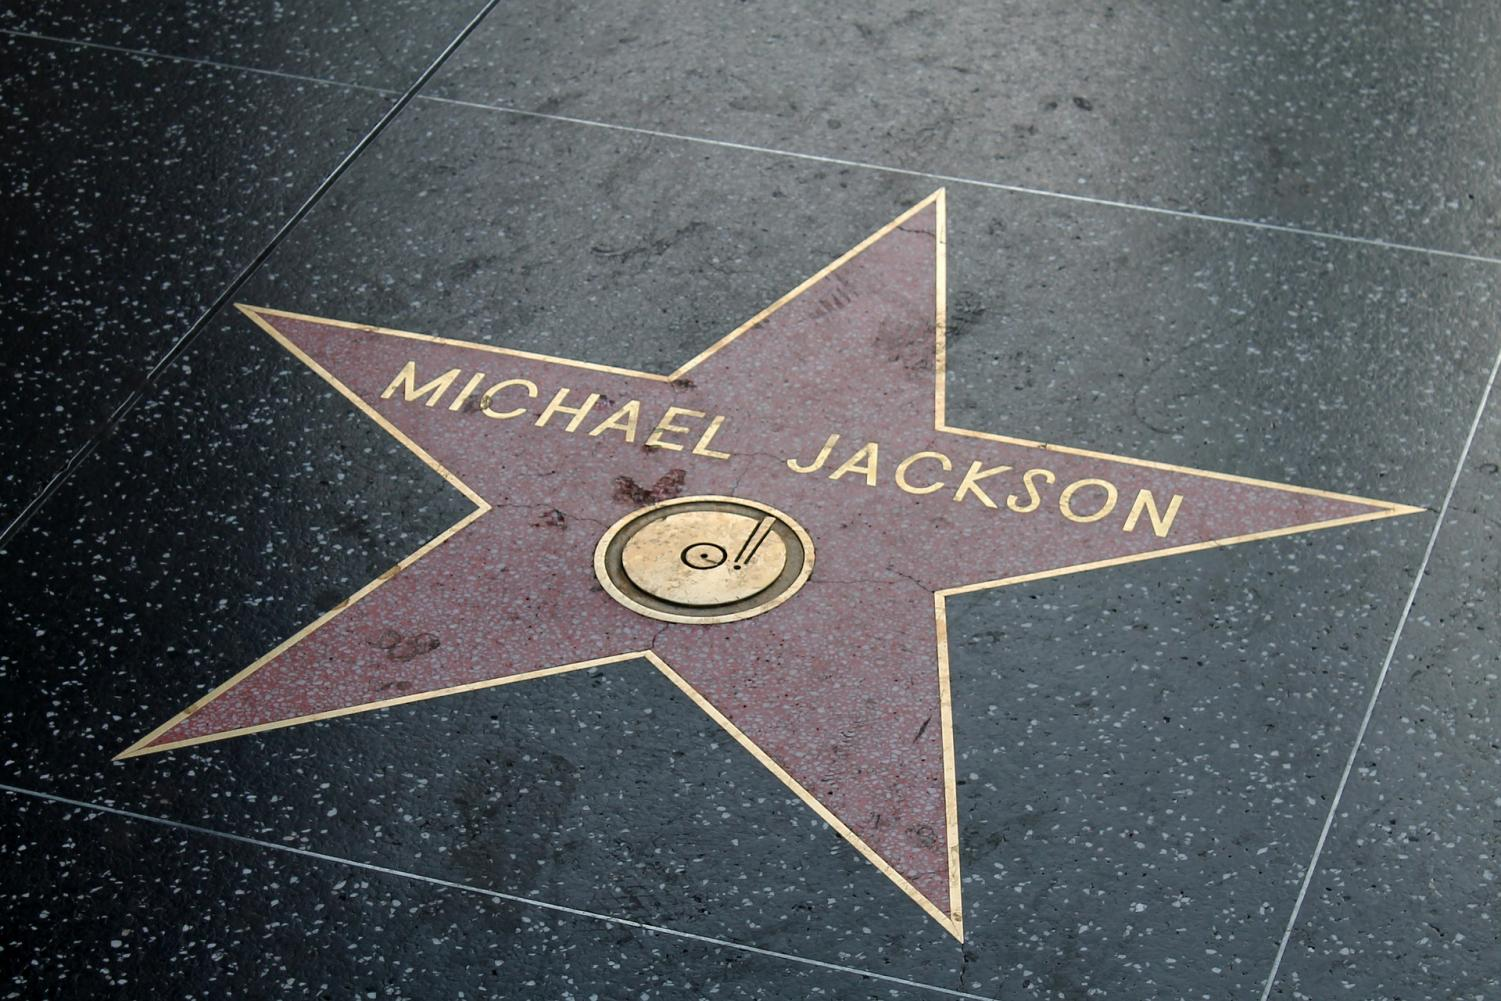 Michael Jackson's career has been followed with fame and controversy, even after his death.